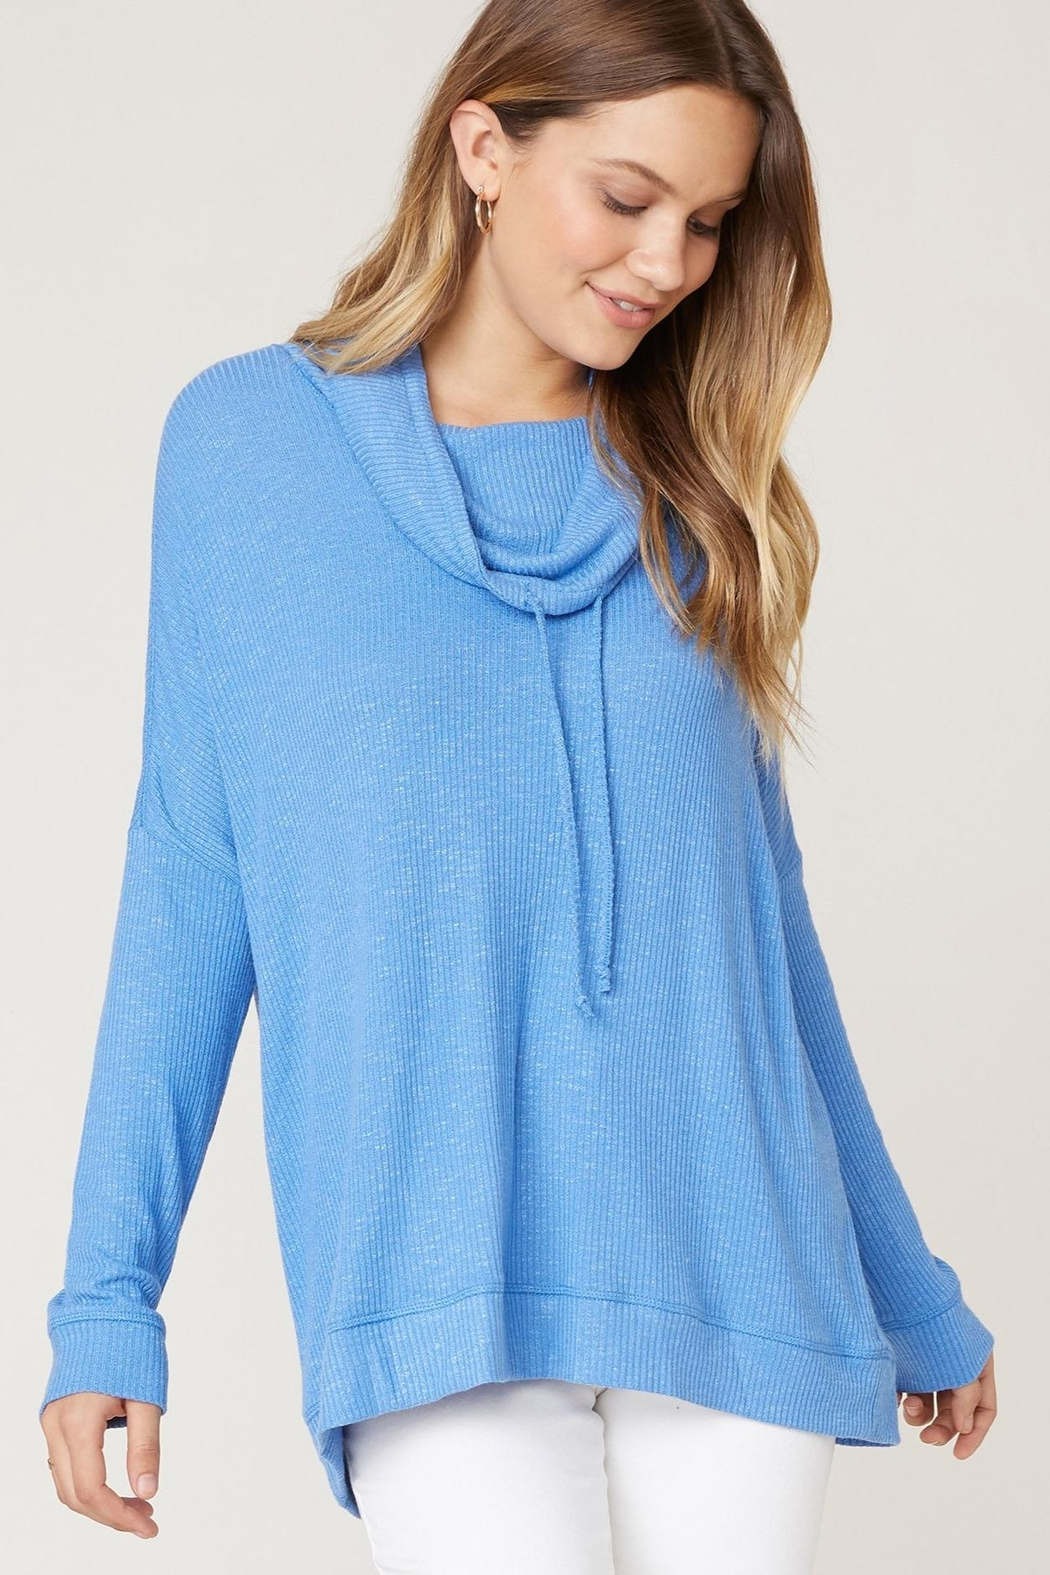 Jack by BB Dakota Creature-Of-Comfort Top - Side Cropped Image